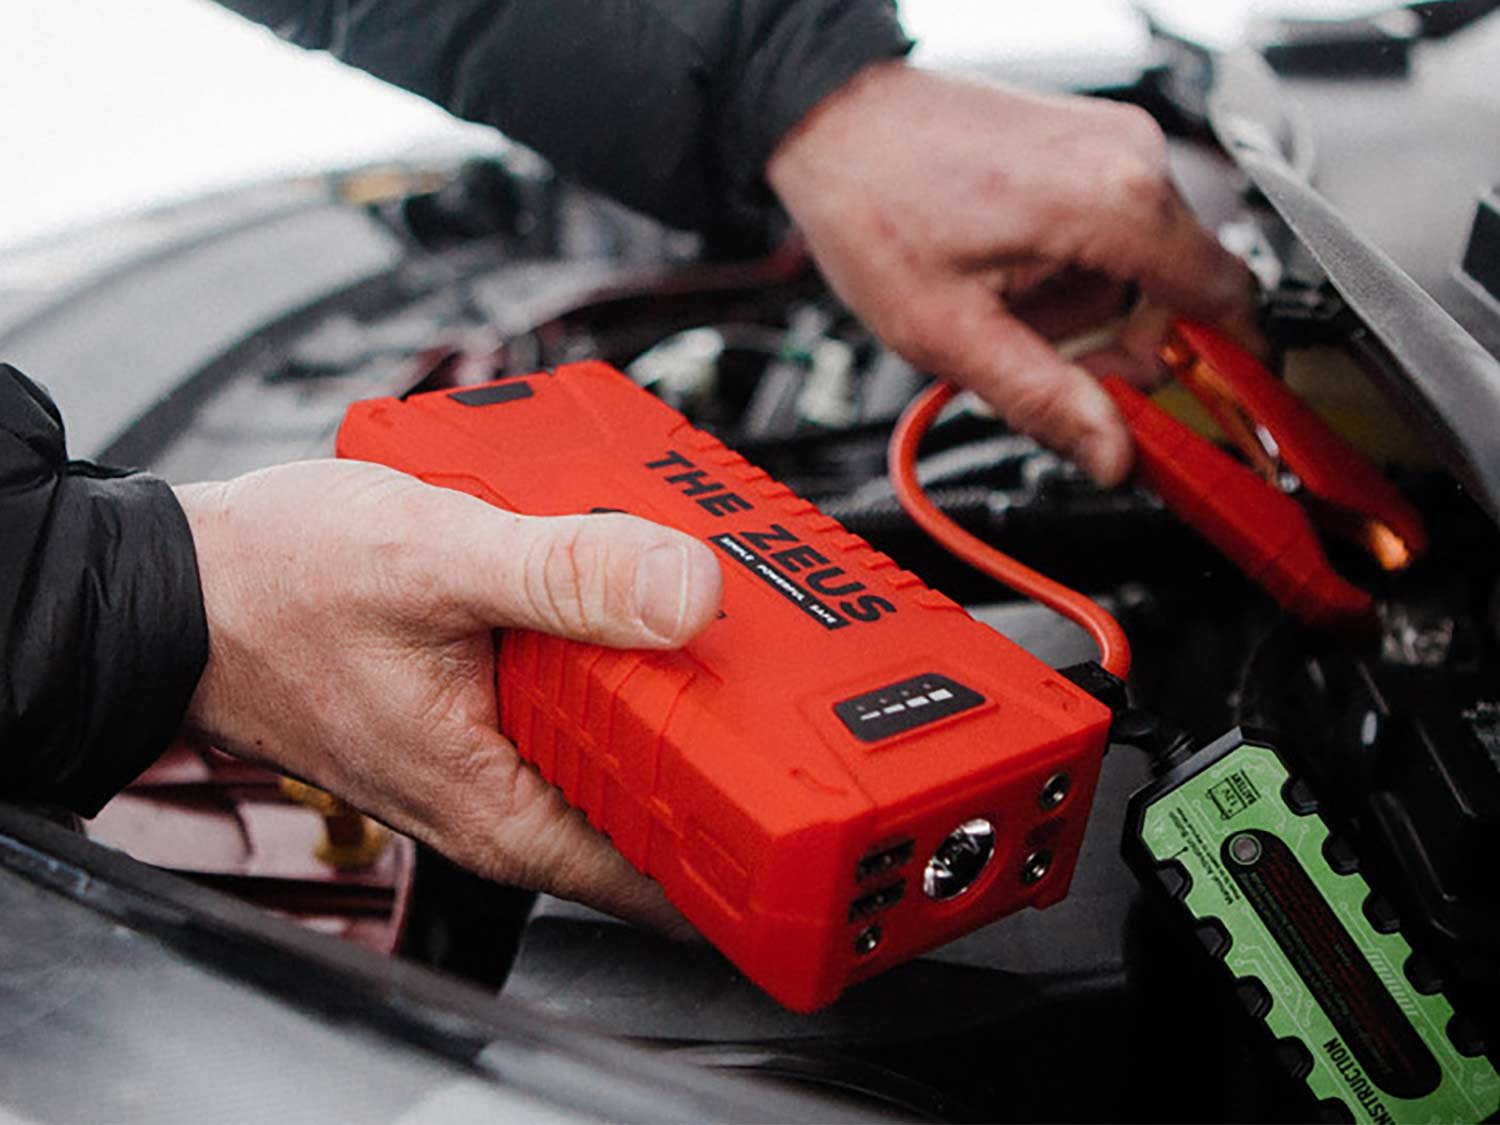 The Zeus Portable Jump Starter hooked to an engine motor.